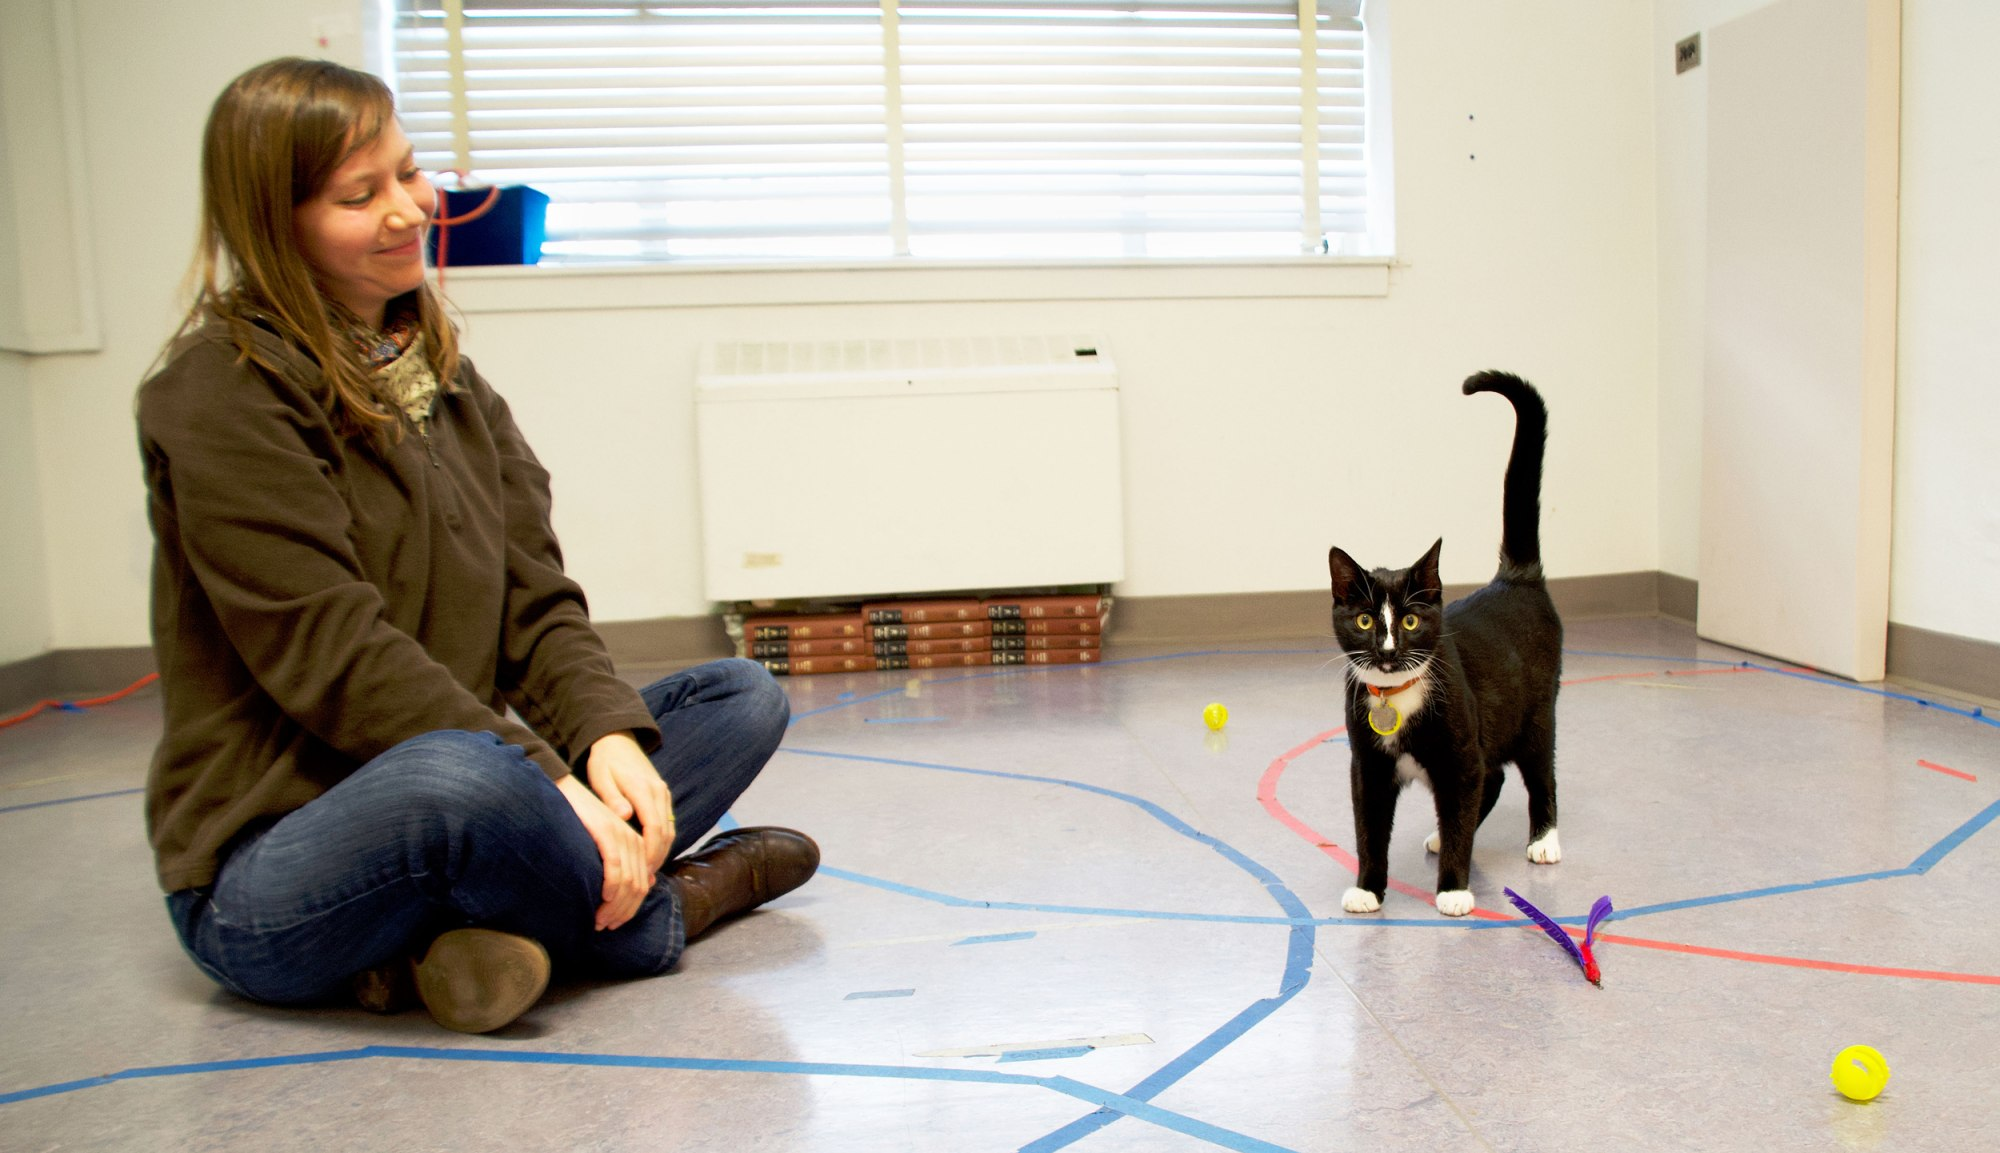 Science Proves Cats Need People